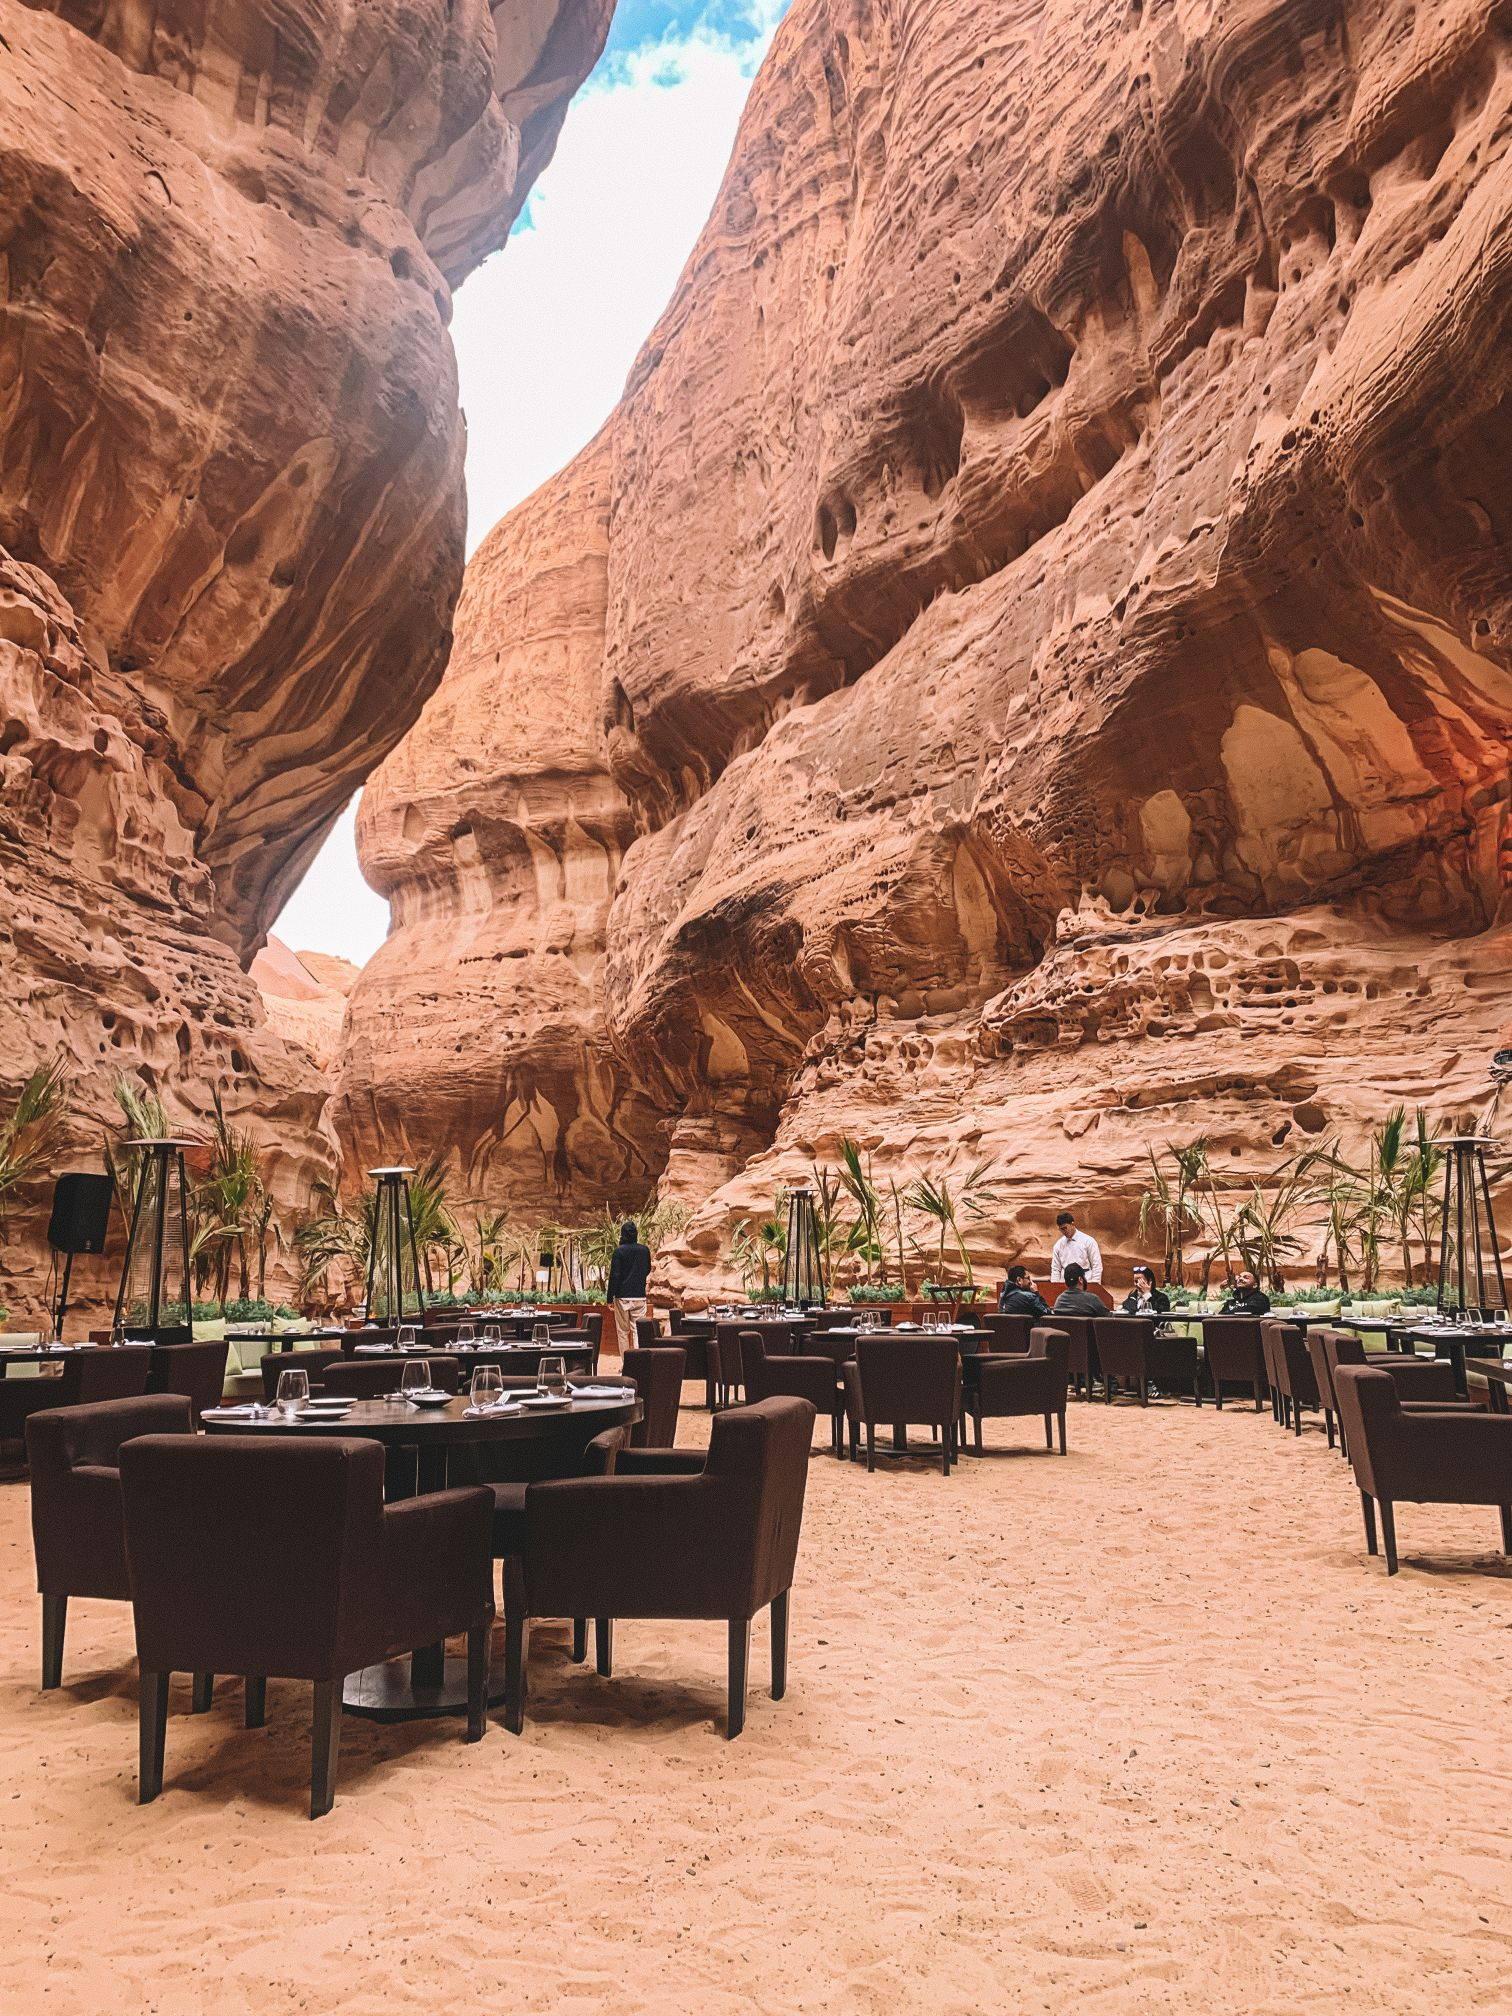 Restaurant in the mountains in Al-Ula Saudi Arabia